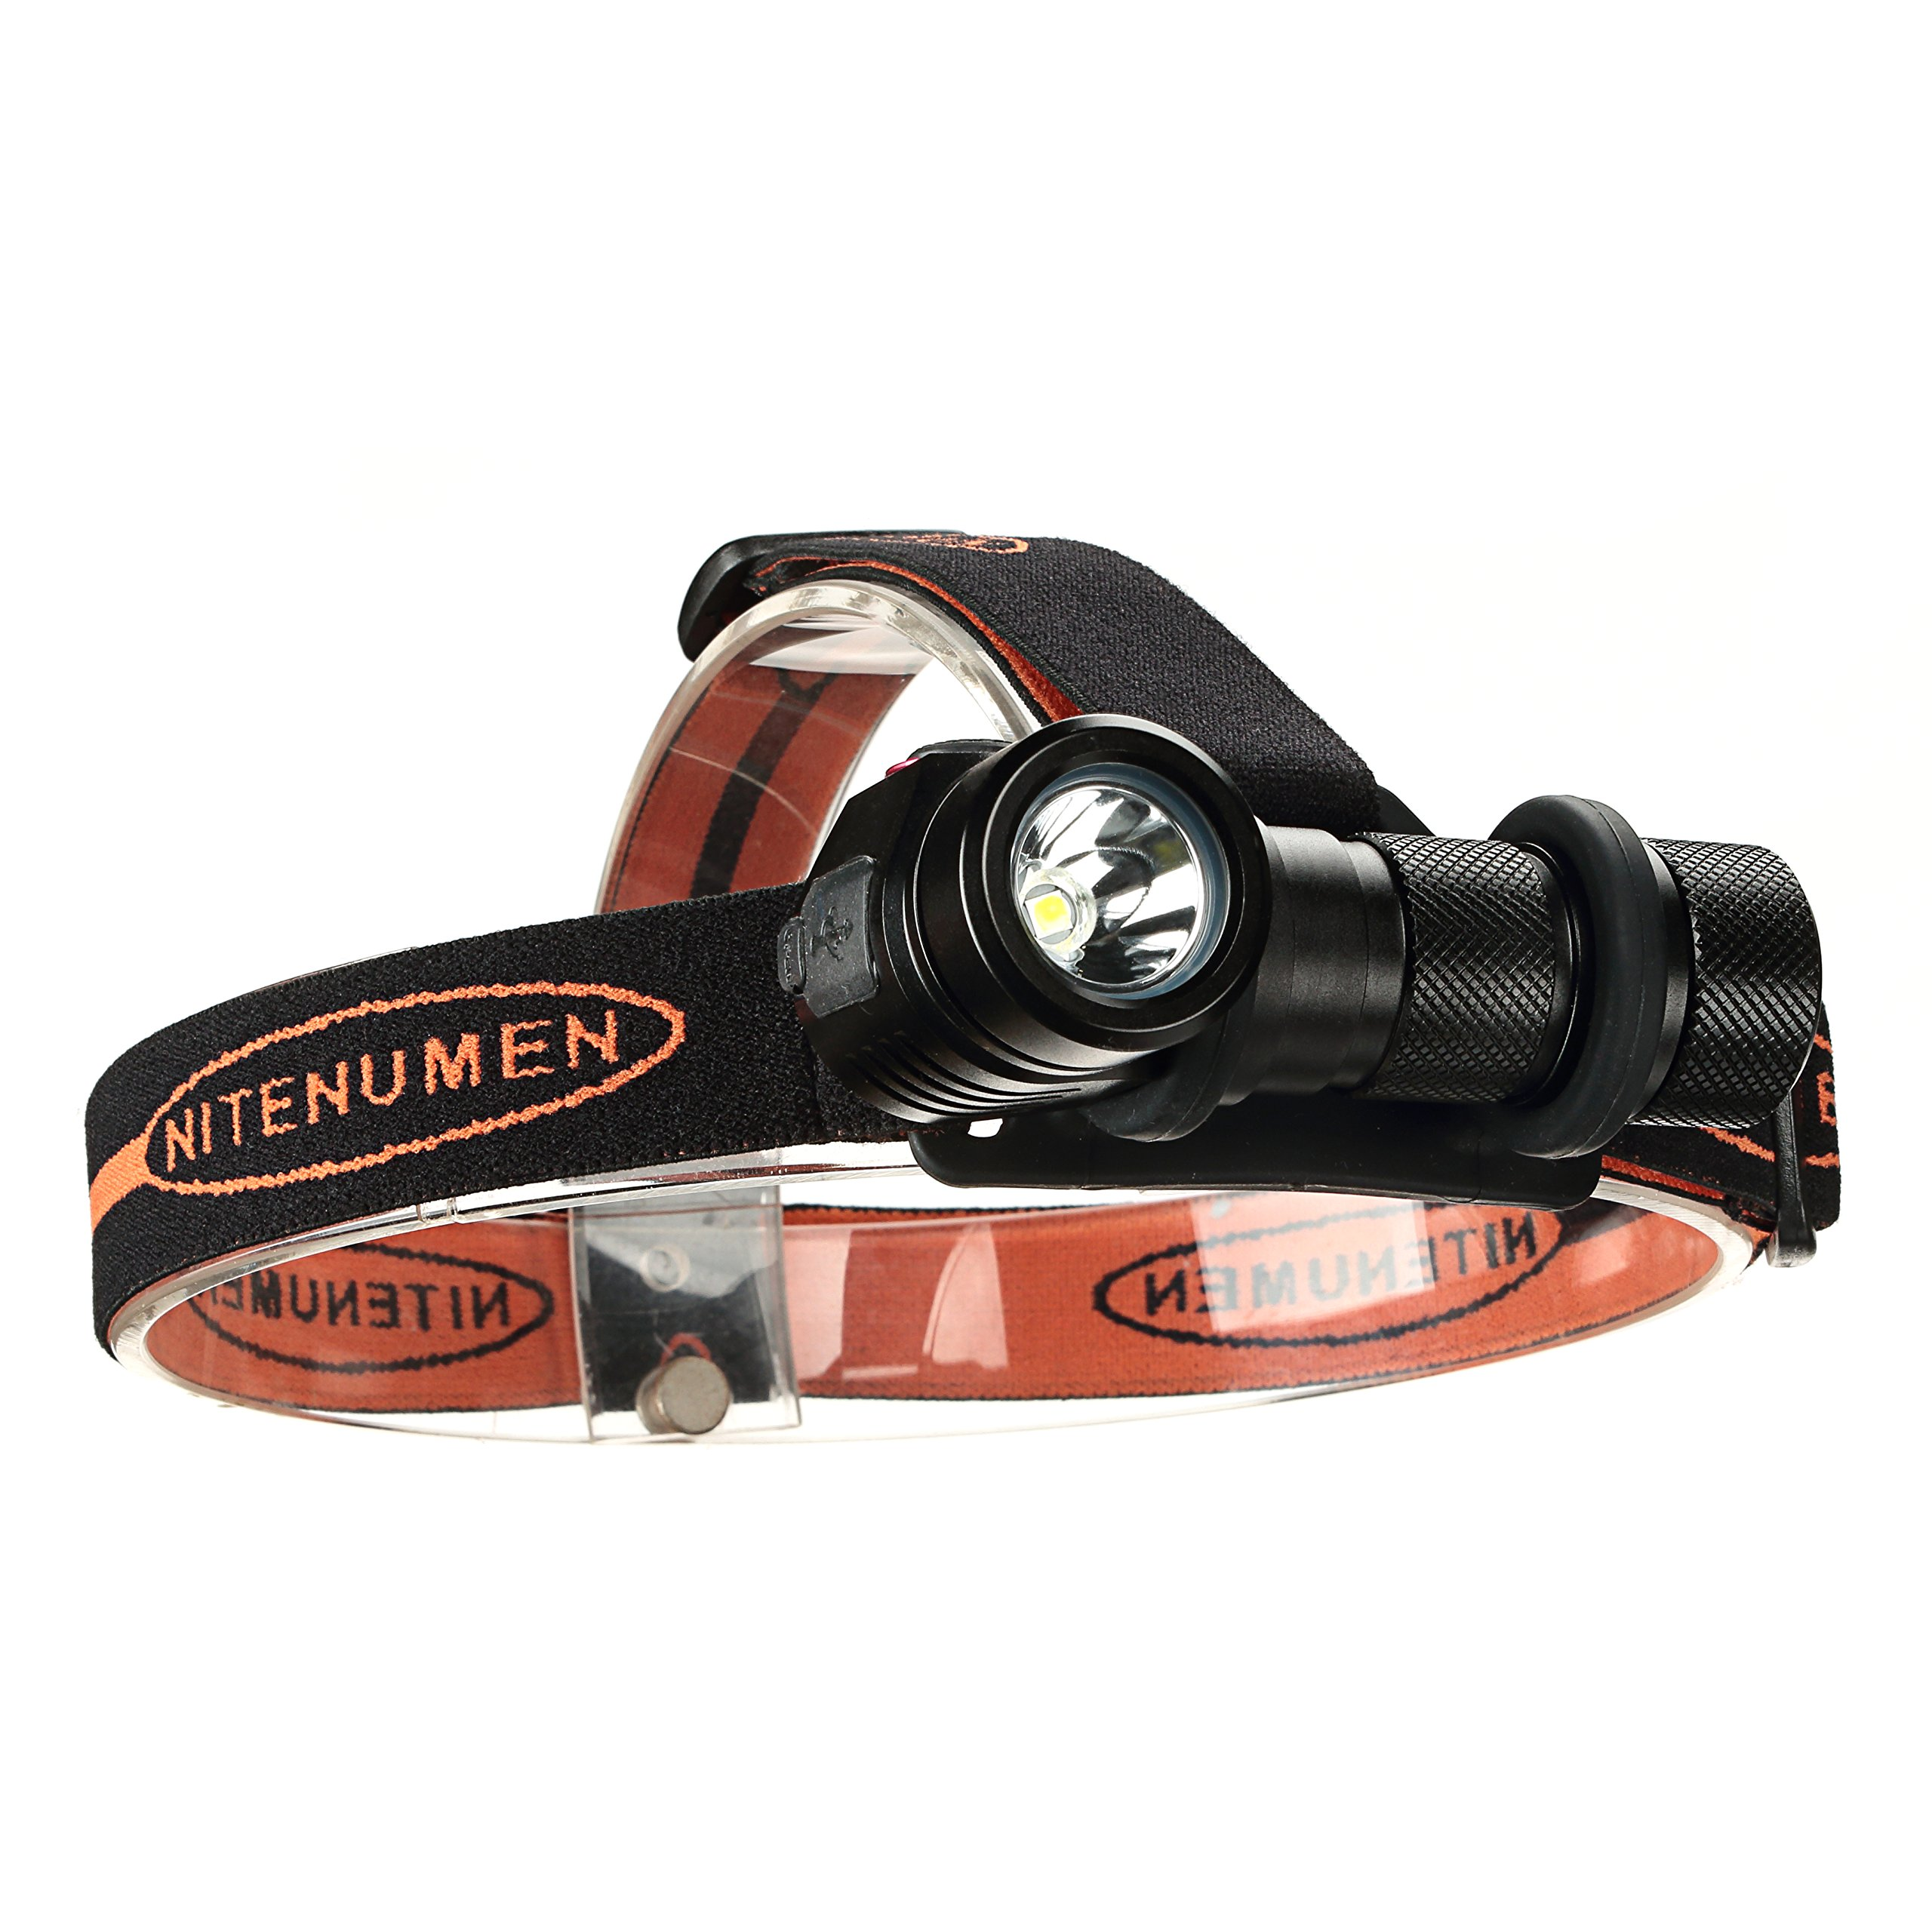 USB Rechargeable Headlamp,CREE XP-L V5 LED Super Bright LED Headlamp with Rechargeable 18650 Batteries-nitenumen H01 by NITENUMEN (Image #3)